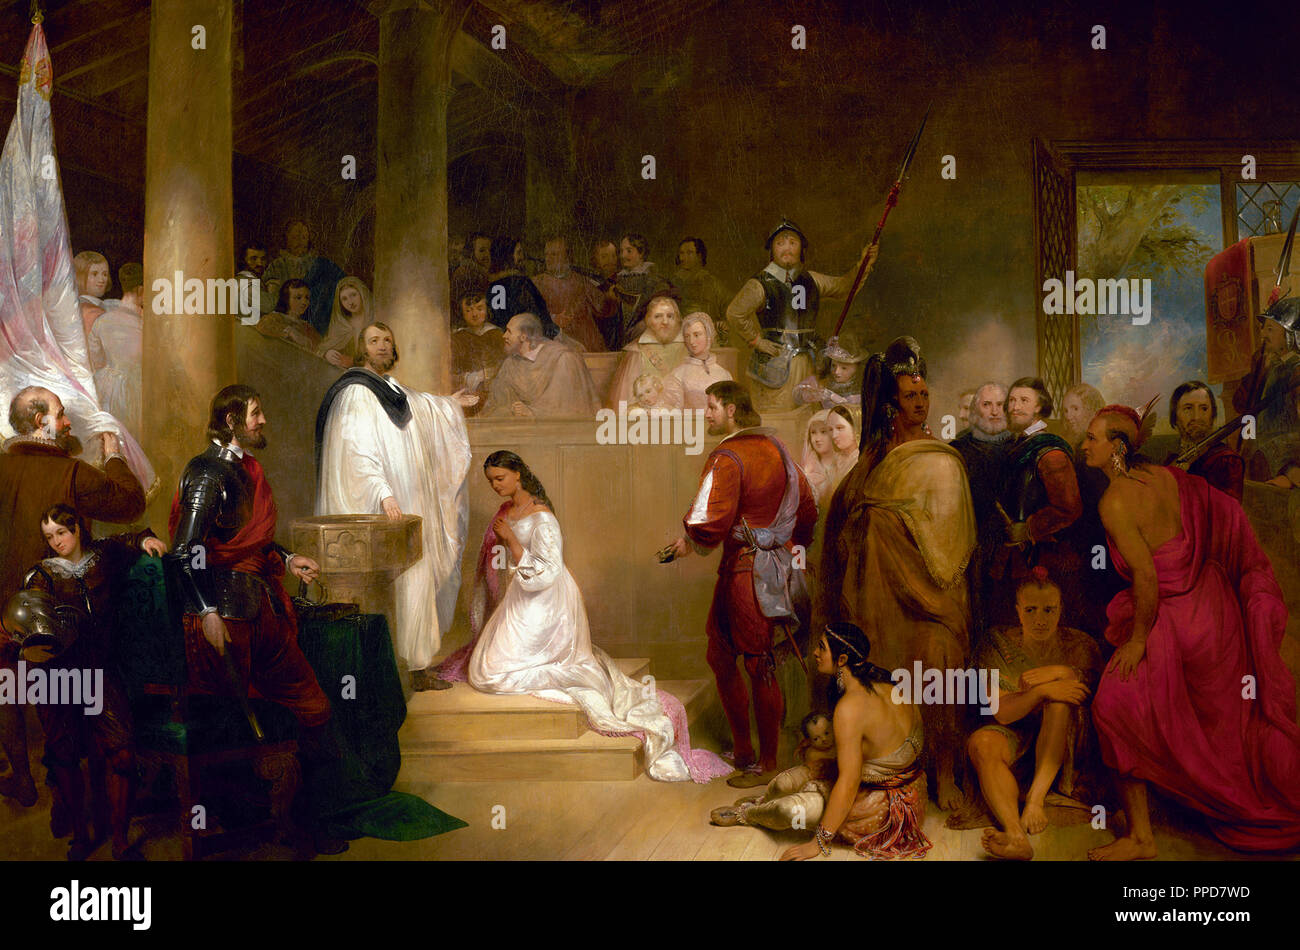 The Baptism of Pocahontas - John Gadsby Chapman depicts Pocahontas, wearing white, being baptized Rebecca by Anglican minister Alexander Whiteaker in Jamestown, Virginia; this event is believed to have taken place in 1613 or 1614. She kneels, surrounded by family members and colonists. Her brother Nantequaus turns away from the ceremony. The baptism took place before her marriage to Englishman John Rolfe, who stands behind her. Their union is said to be the first recorded marriage between a European and a Native American. The scene symbolizes the belief of Americans at the time that Native Ame - Stock Image